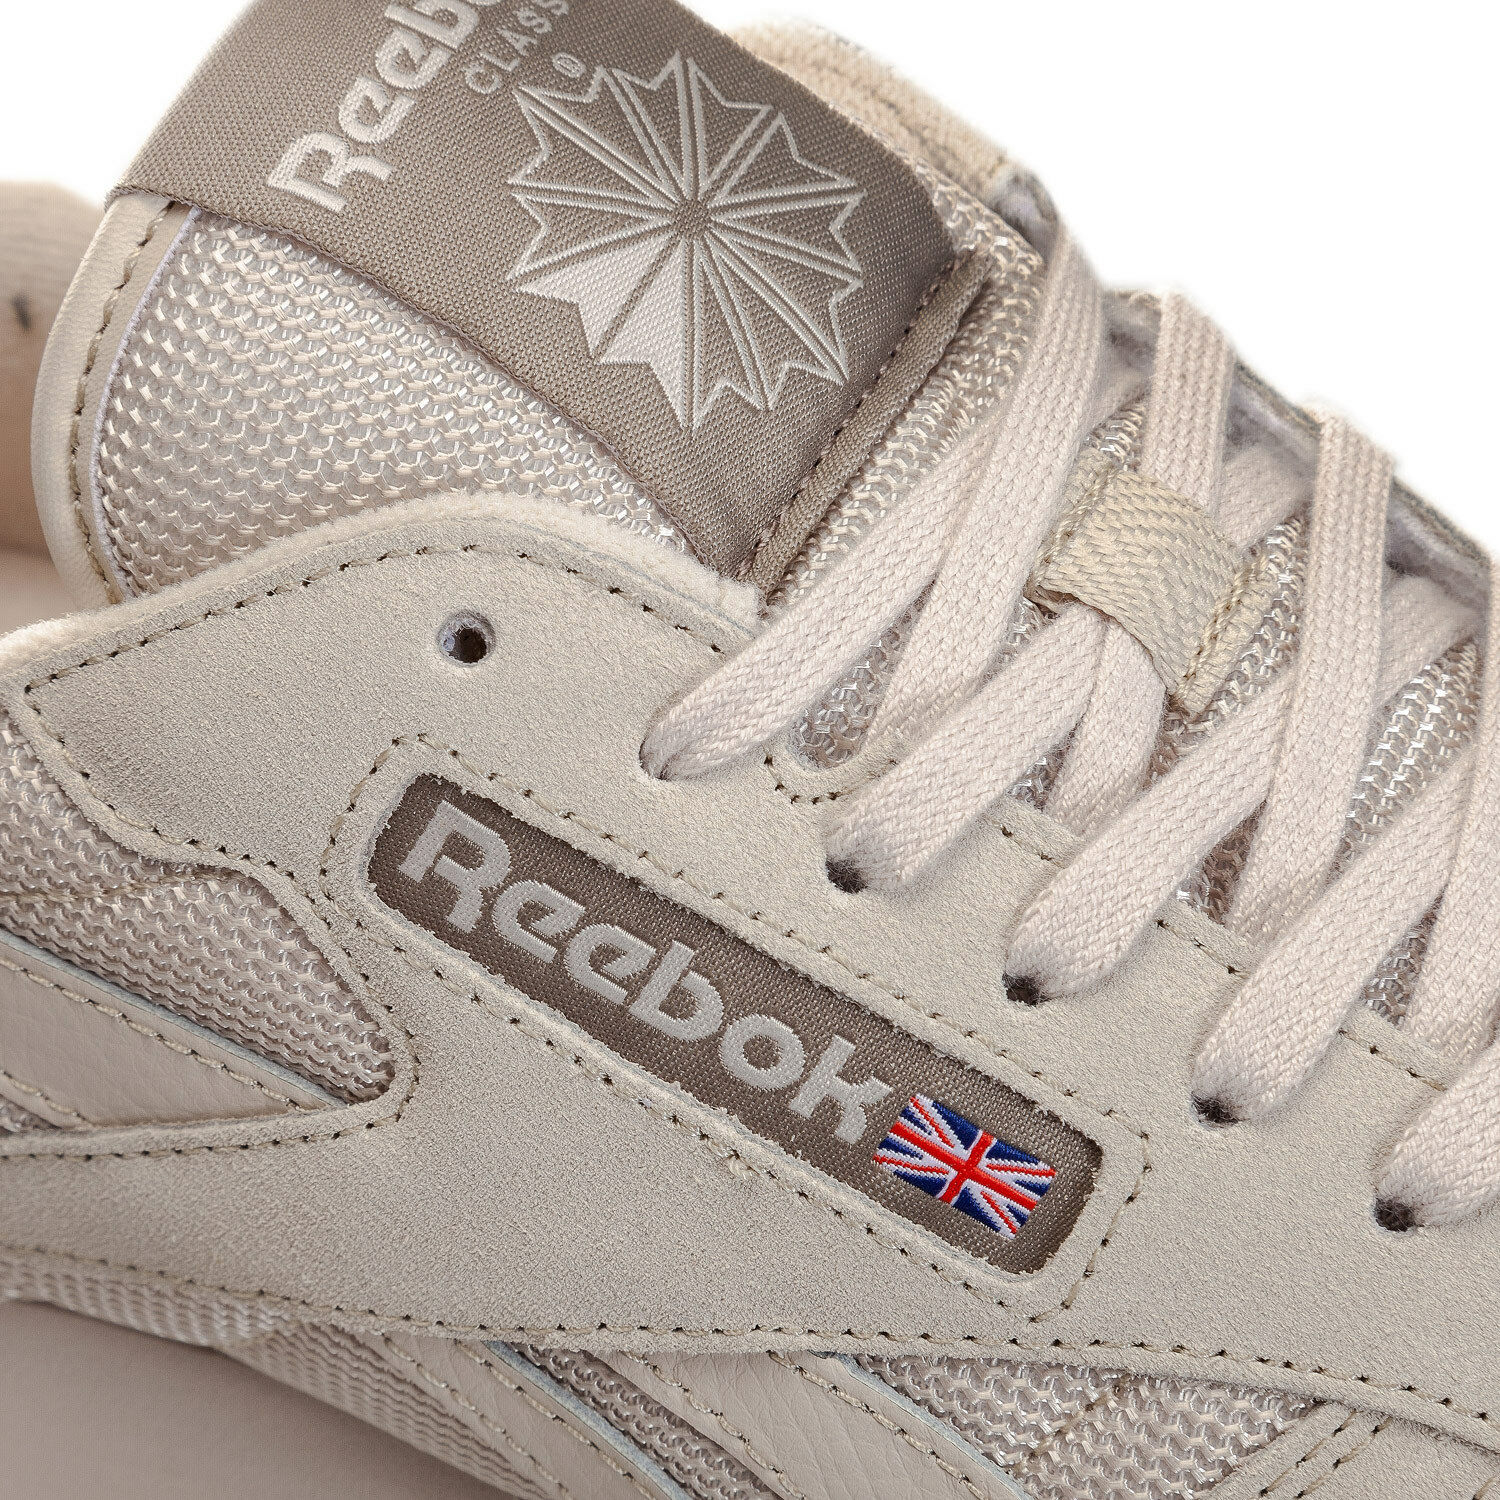 b3978358630 Mens Reebok Classic Leather Urban Descent Trainers in Stucco   Beach Stone  UK 13 BS8893BEI142 for sale online